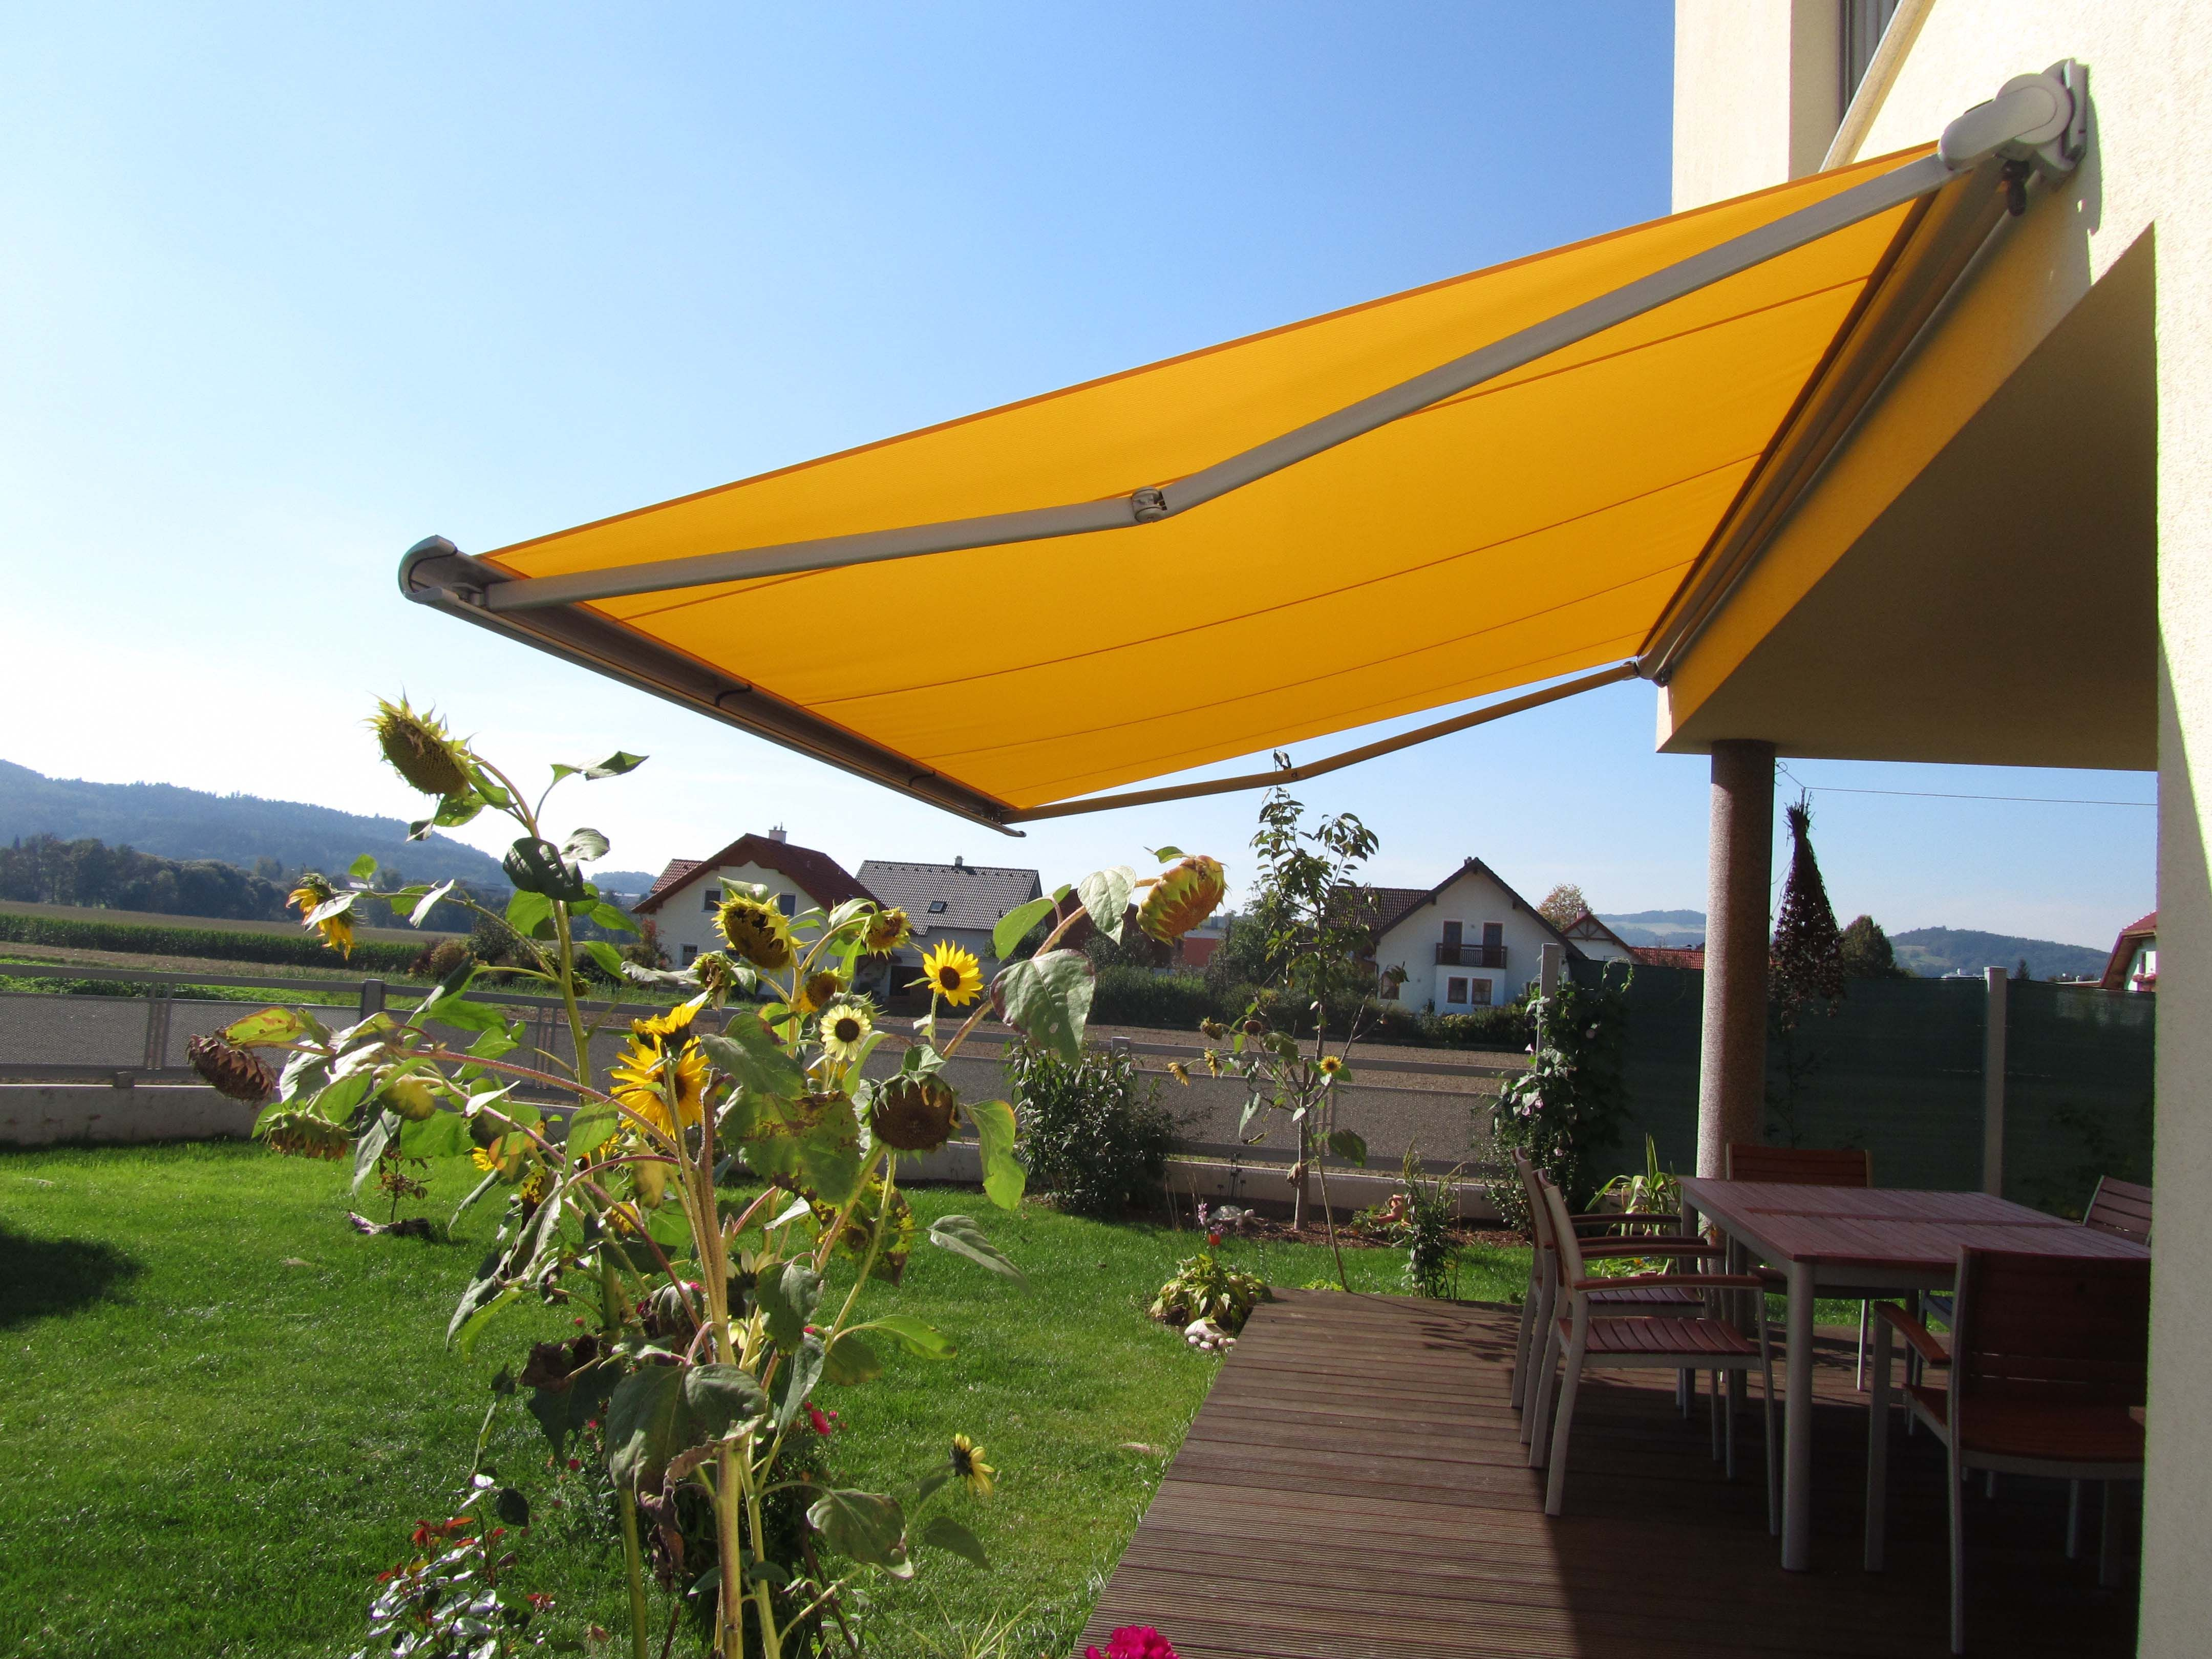 Samson Awnings Terrace Covers Is A Market Leader In The Supply Installation And Servicing Of Patio UK Electric Manual